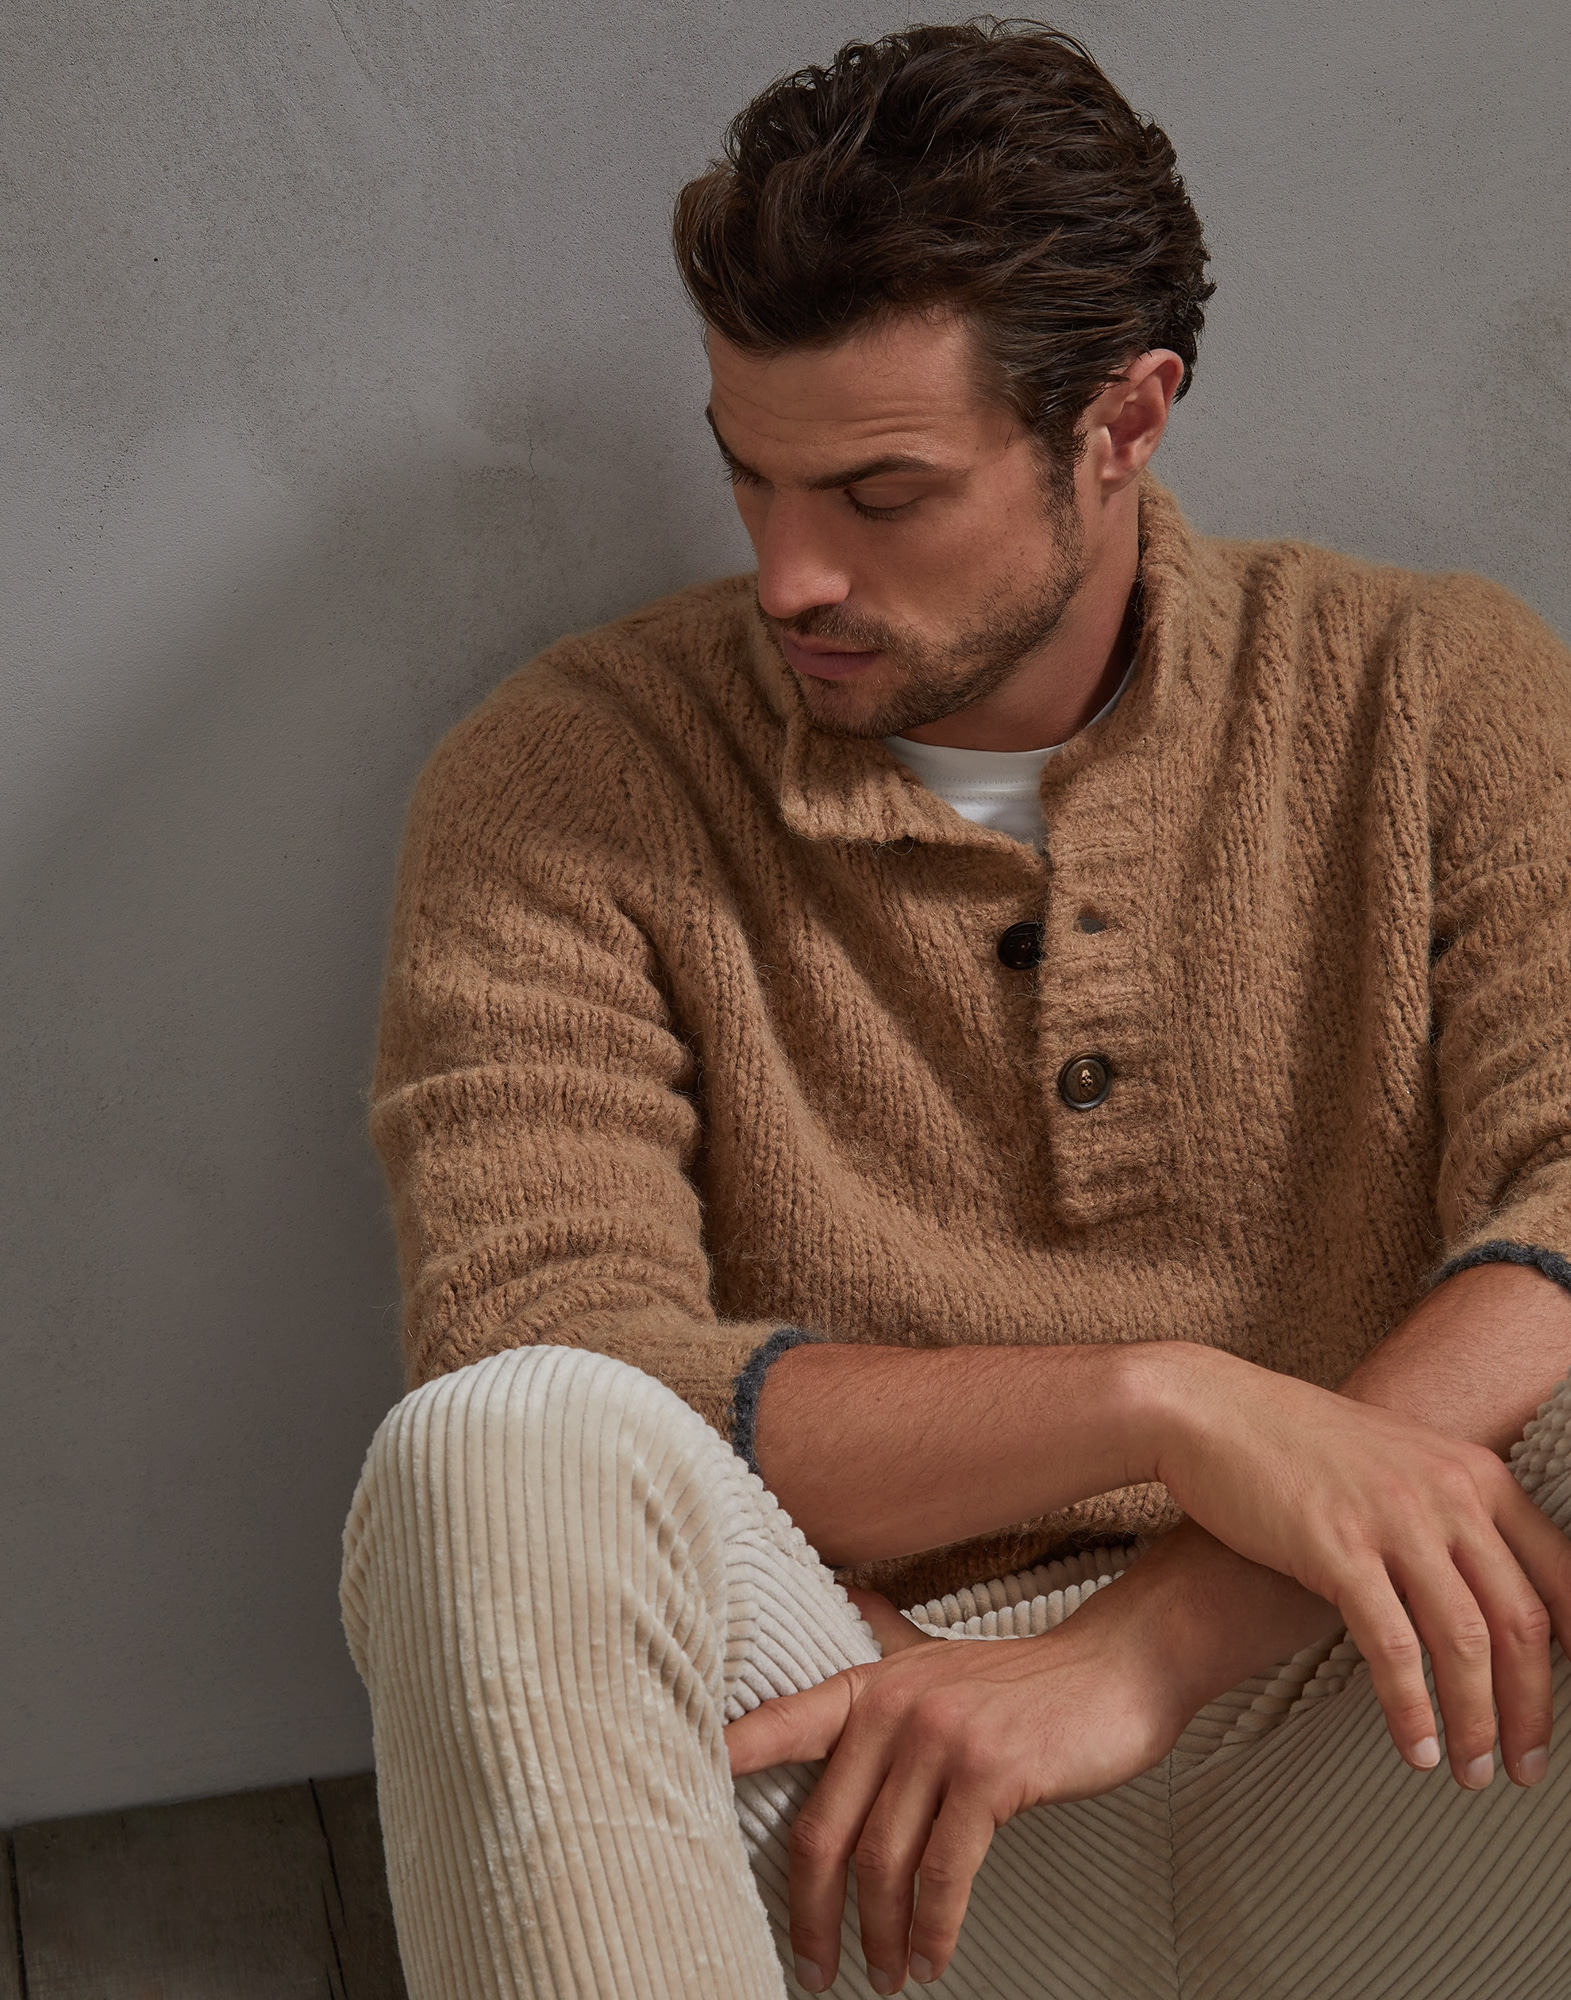 High Neck Sweater - Editorial